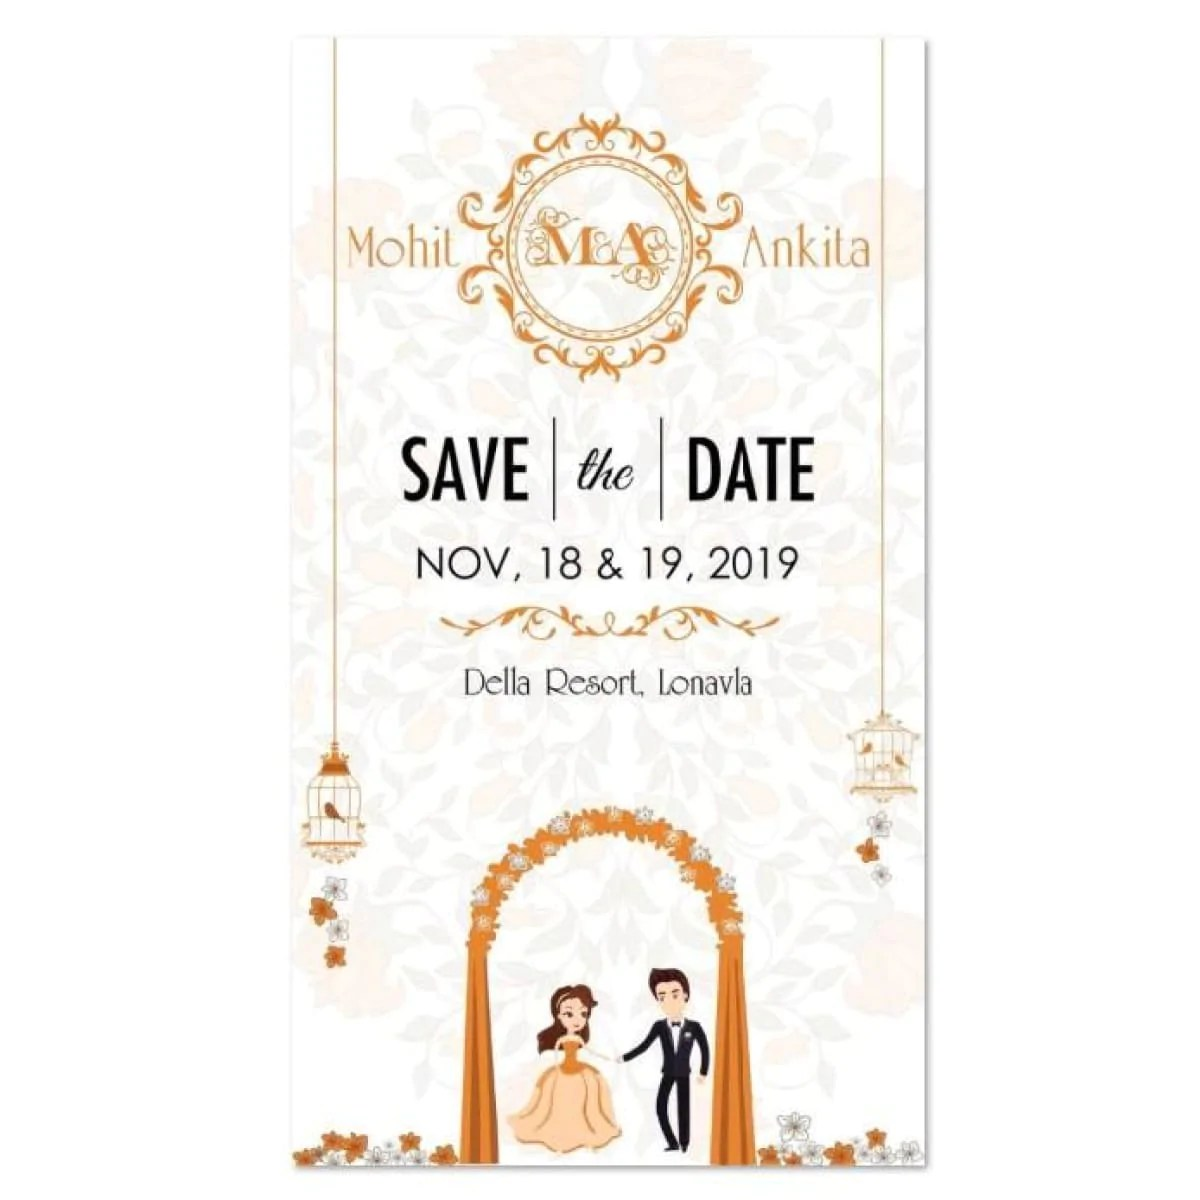 Invitations, free ecards and party planning ideas from evite. Animated Digital Save The Date Cards Custom Evite Rdevsd 7 Raniti Llc Custom Invitations Stationery